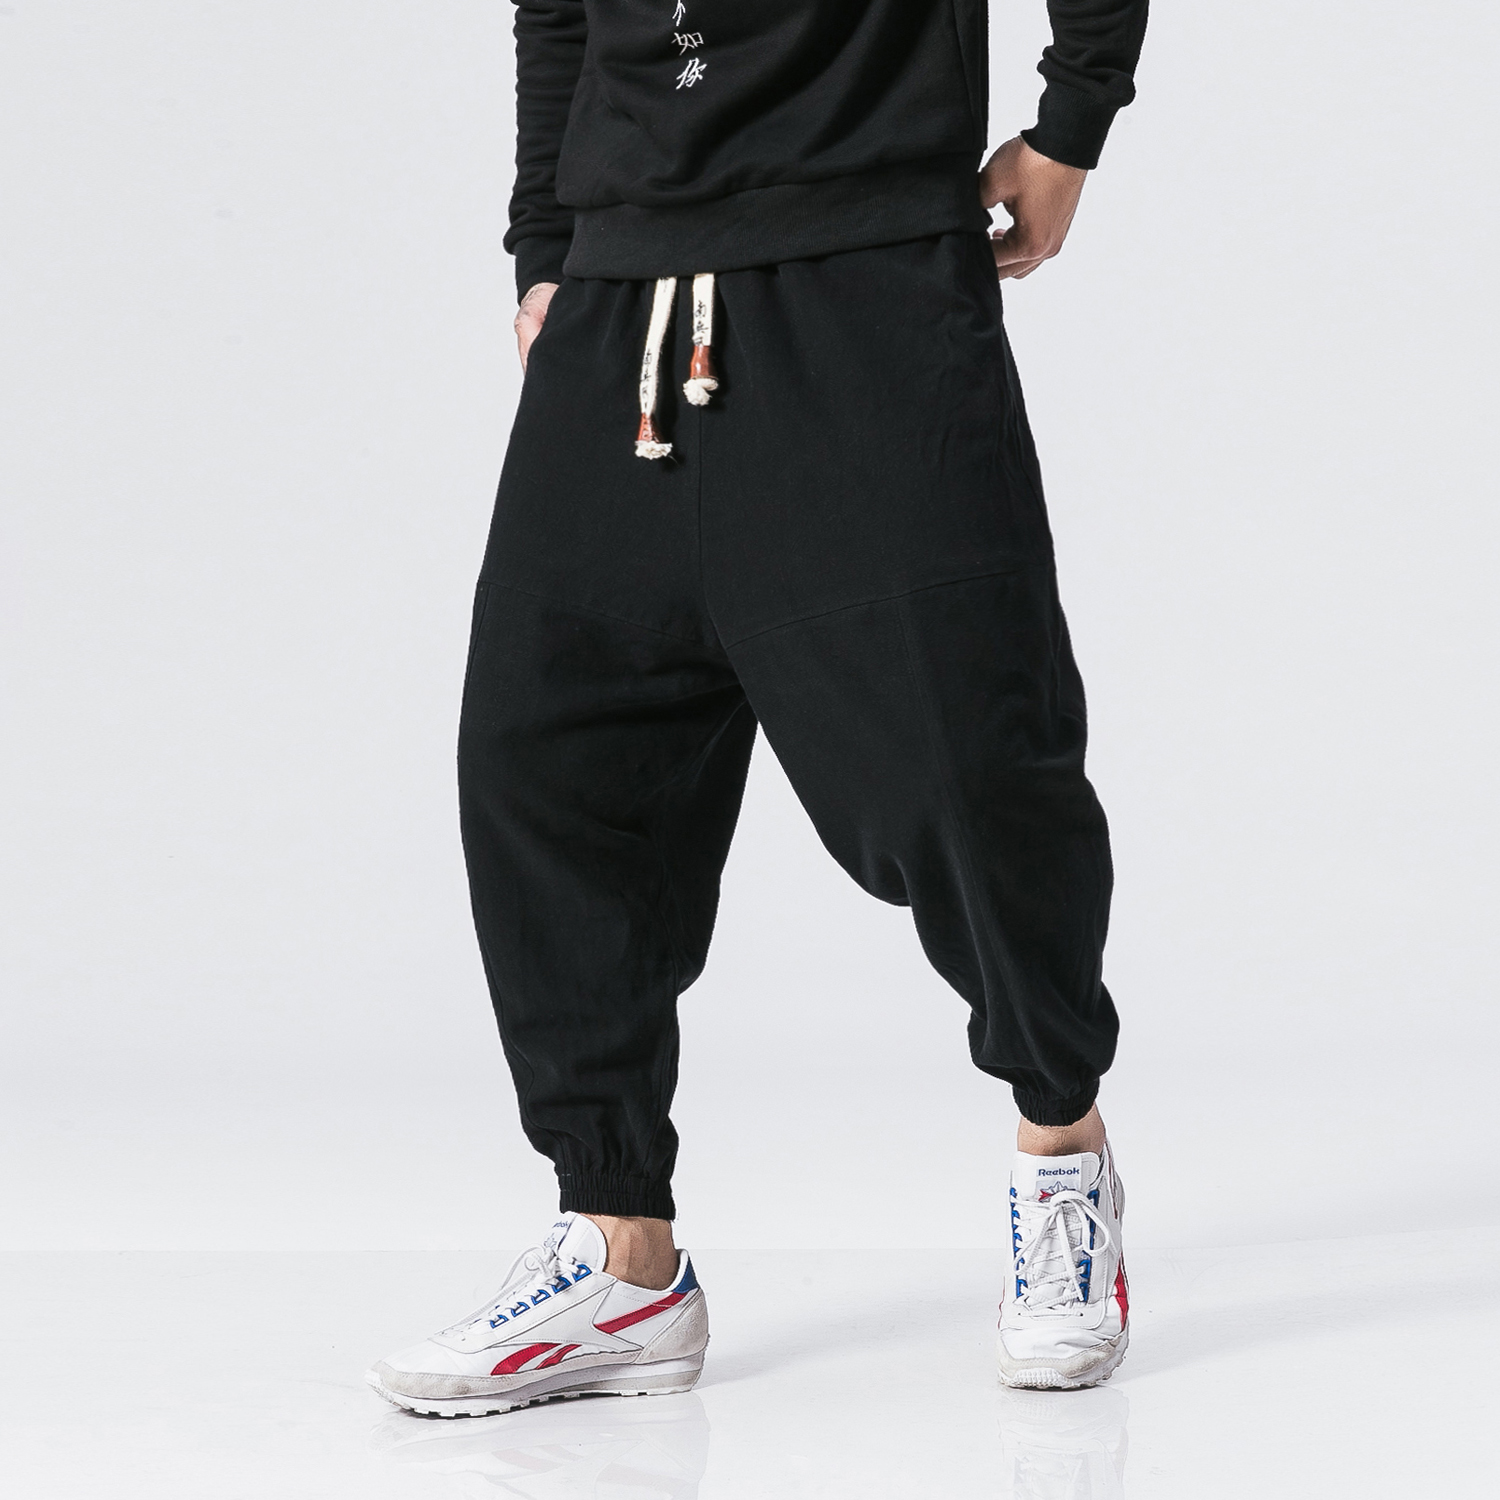 Men Winter Thicken Velvet Cotton Linen Casual Trousers Male Fashion Casual Loose Harem Pant Jogger Sweatpants Size M 5XL-in Harem Pants from Men's Clothing    1